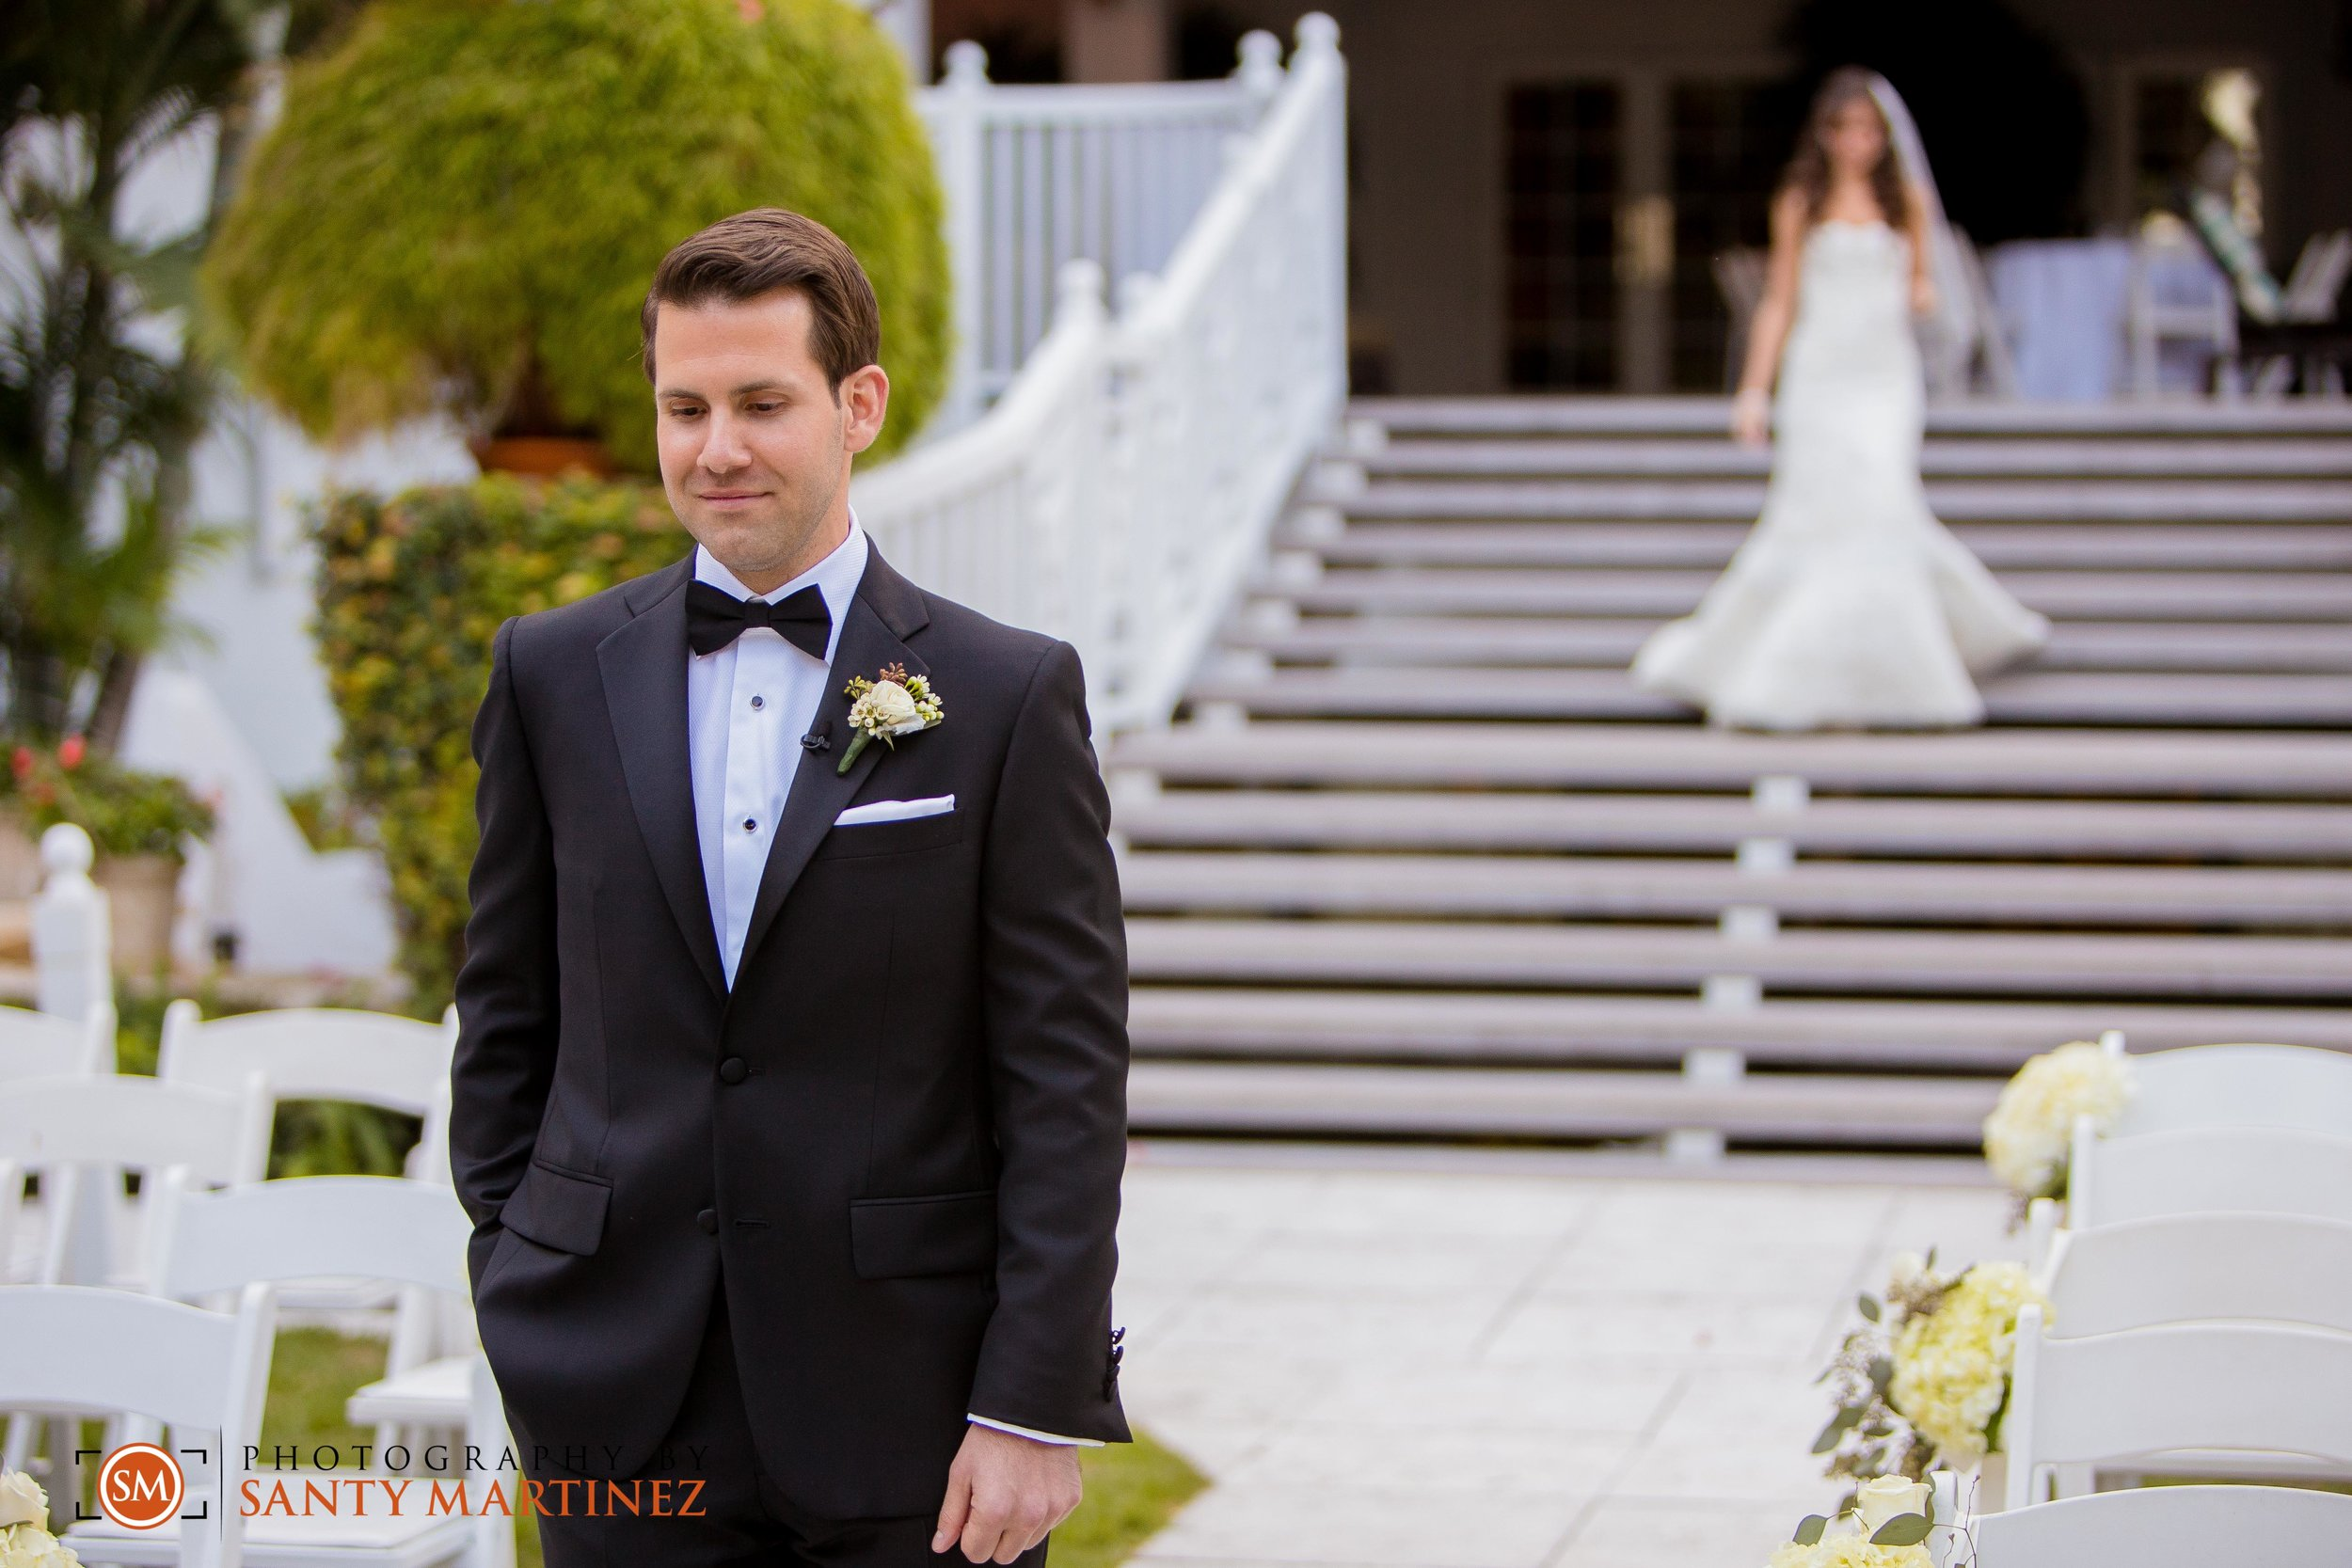 Miami Wedding Photographer - Santy Martinez -14.jpg